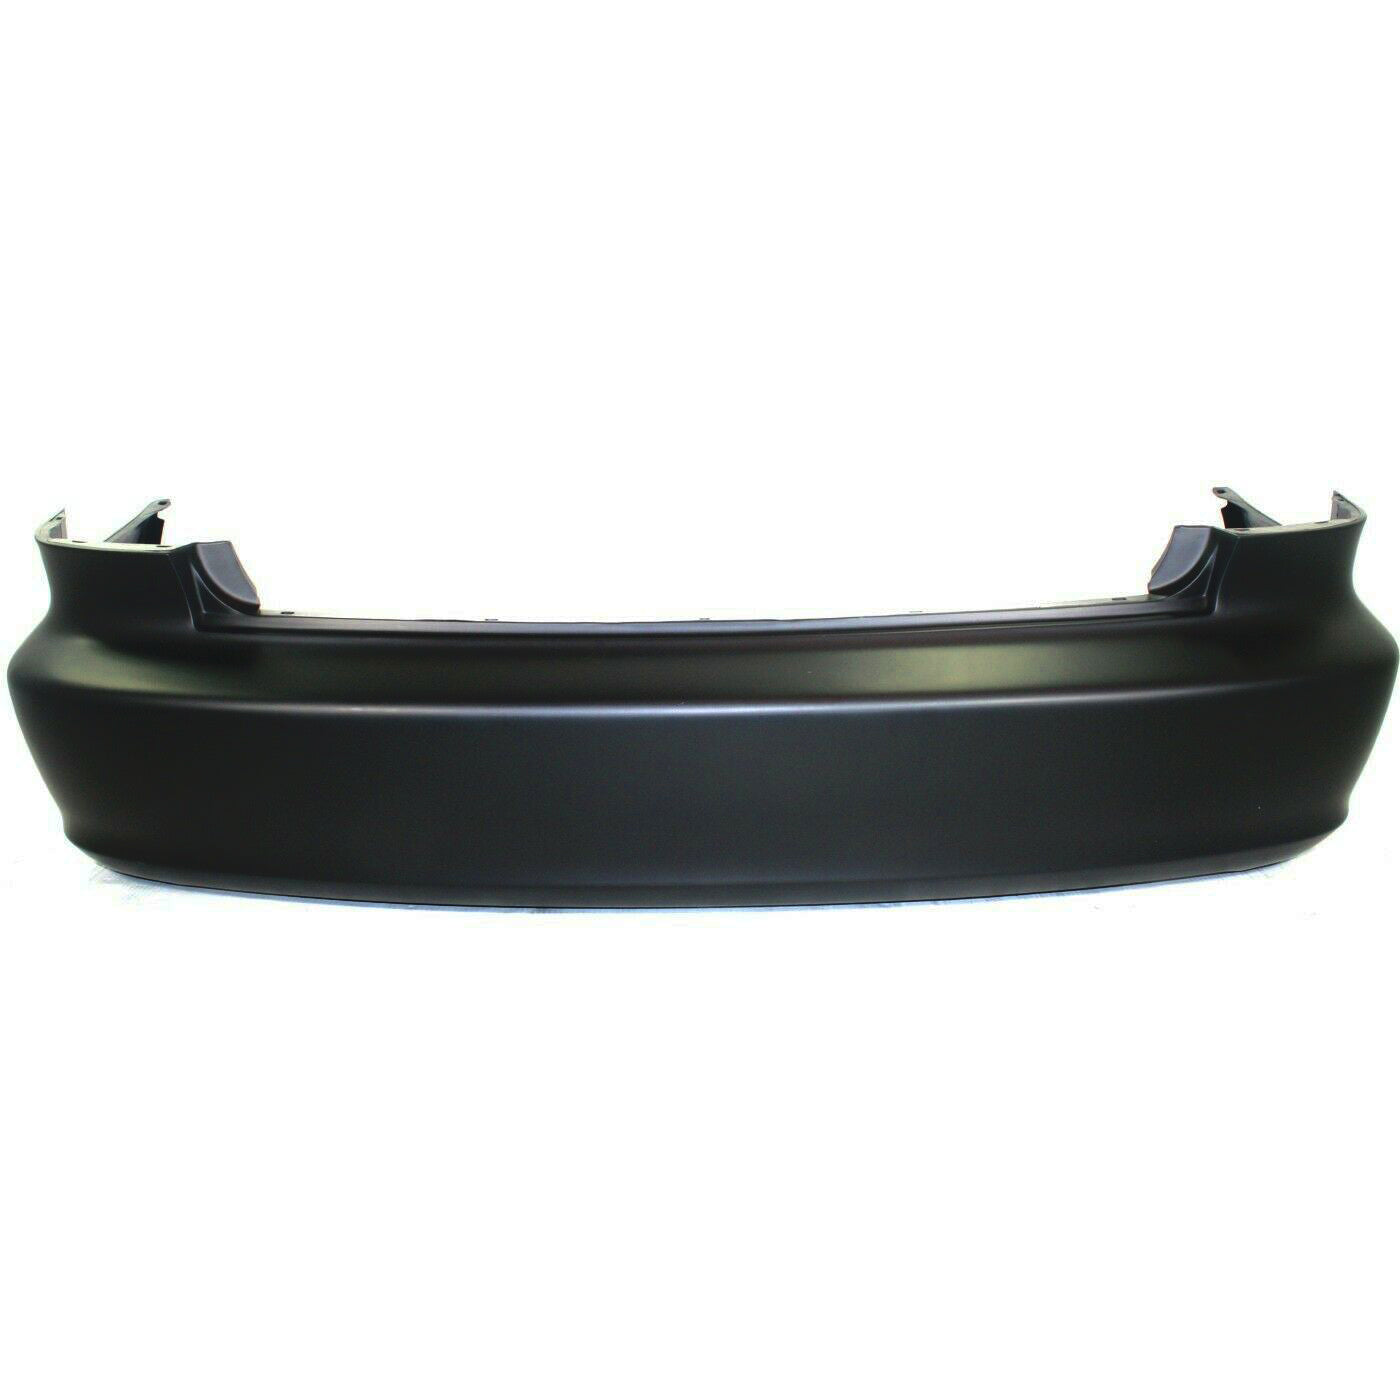 1998-2002 Honda Accord Sedan Rear Bumper